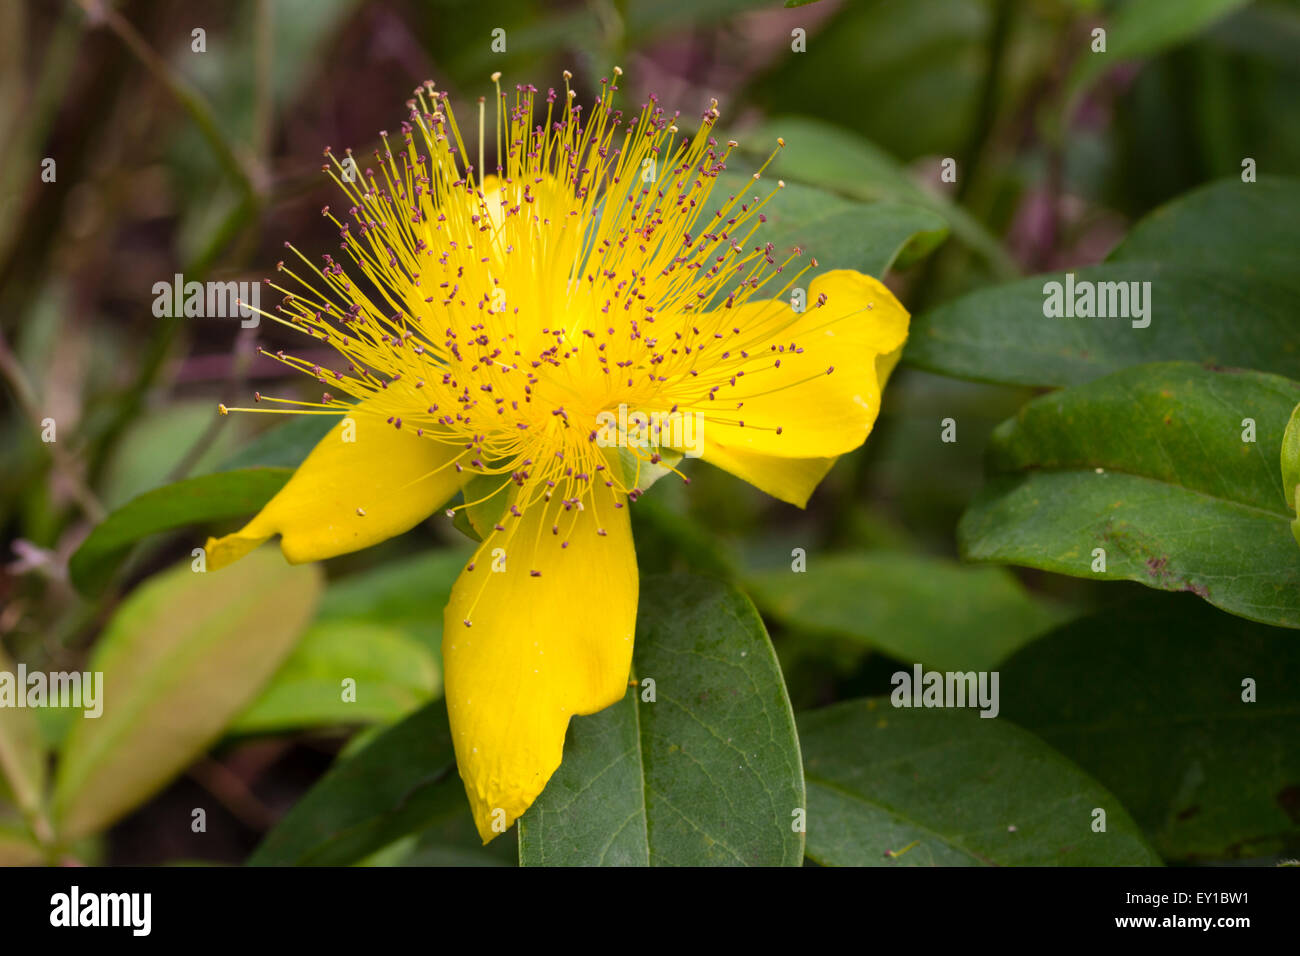 Rose of sharon stock photos rose of sharon stock images alamy attractive yellow flowers of the rose of sharon hypericum calycinum a ground covering shrub mightylinksfo